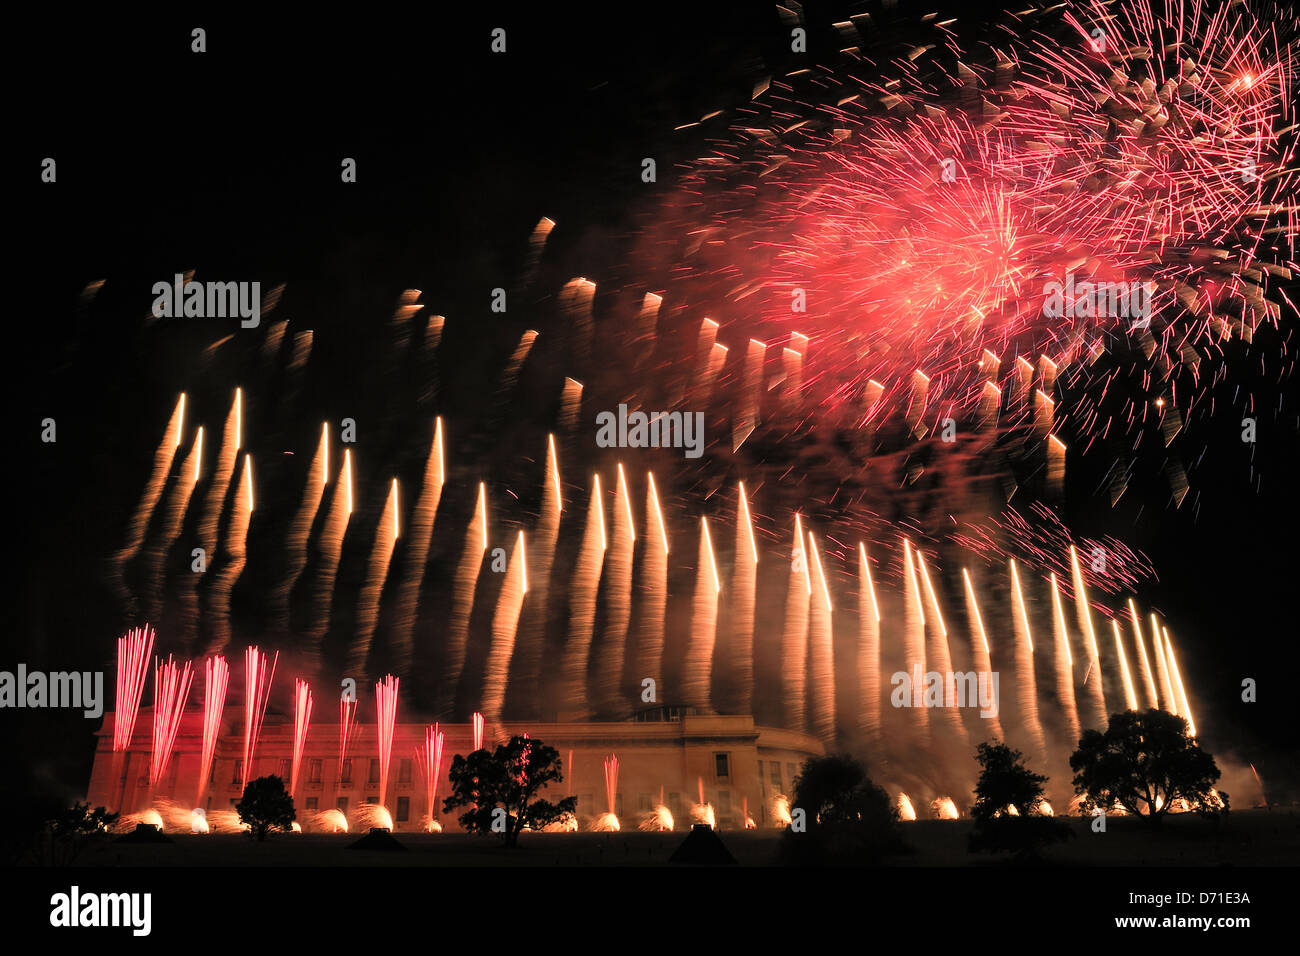 Fireworks over the museum in  Auckland Domain during The Breath of the Volcano light show by Groupe F,  Auckland - Stock Image